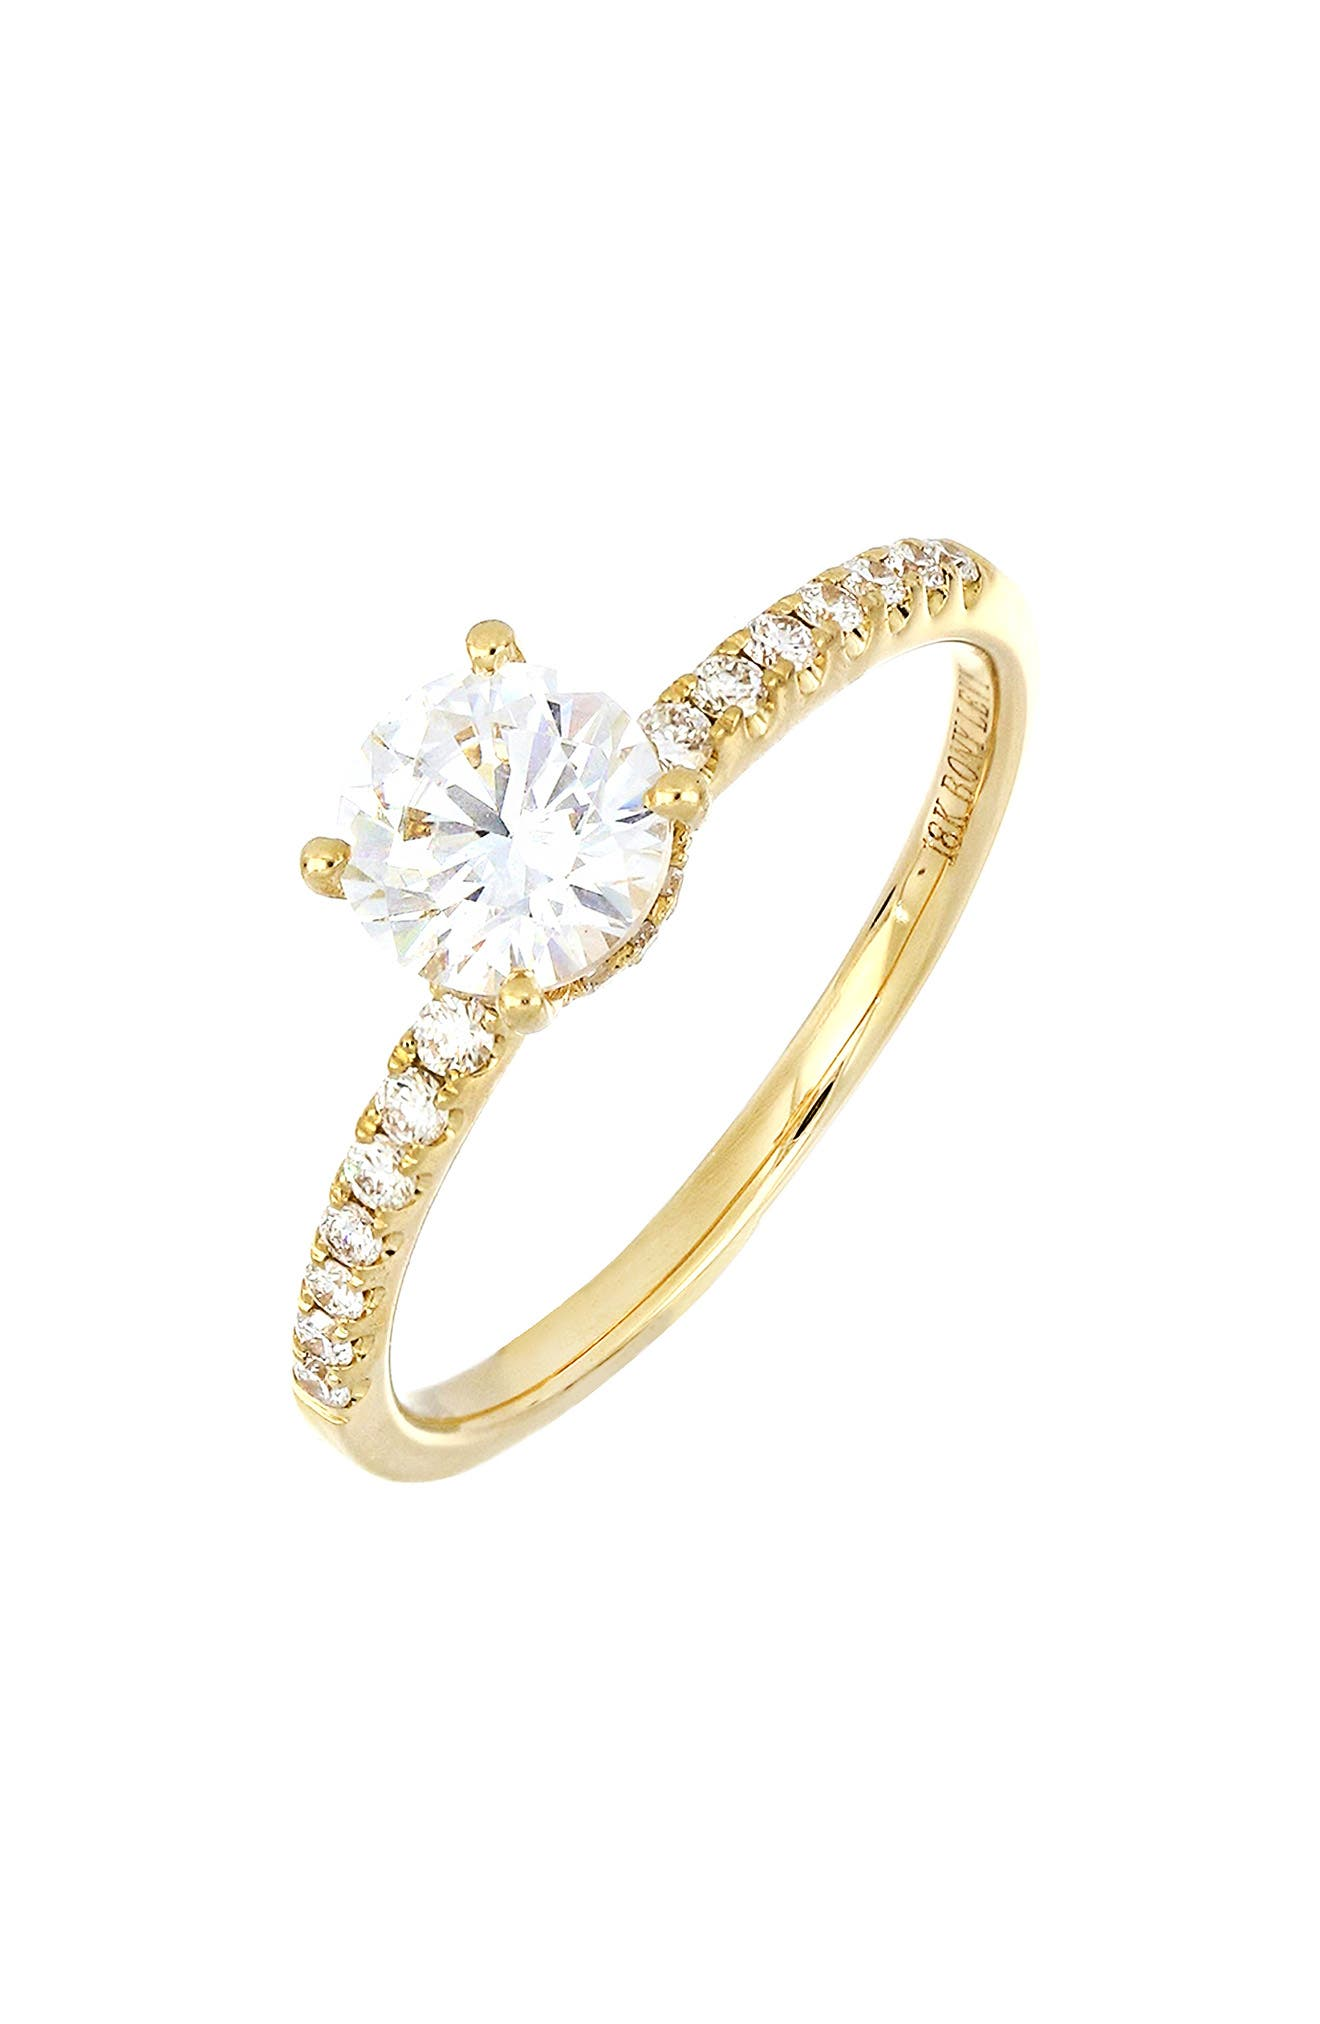 Forty-four pave-set diamonds add brilliant shine to the band and solitaire setting of a striking 18-karat-gold ring topped by a round cubic zirconia. Wear it as is, or you can buy and add the gem of your choice in place of the cubic zirconia after the proposal. Style Name: Bony Levy Pave Diamond & Cubic Zirconia Solitaire Engagement Ring Setting (Nordstrom Exclusive). Style Number: 6091371. Available in stores.